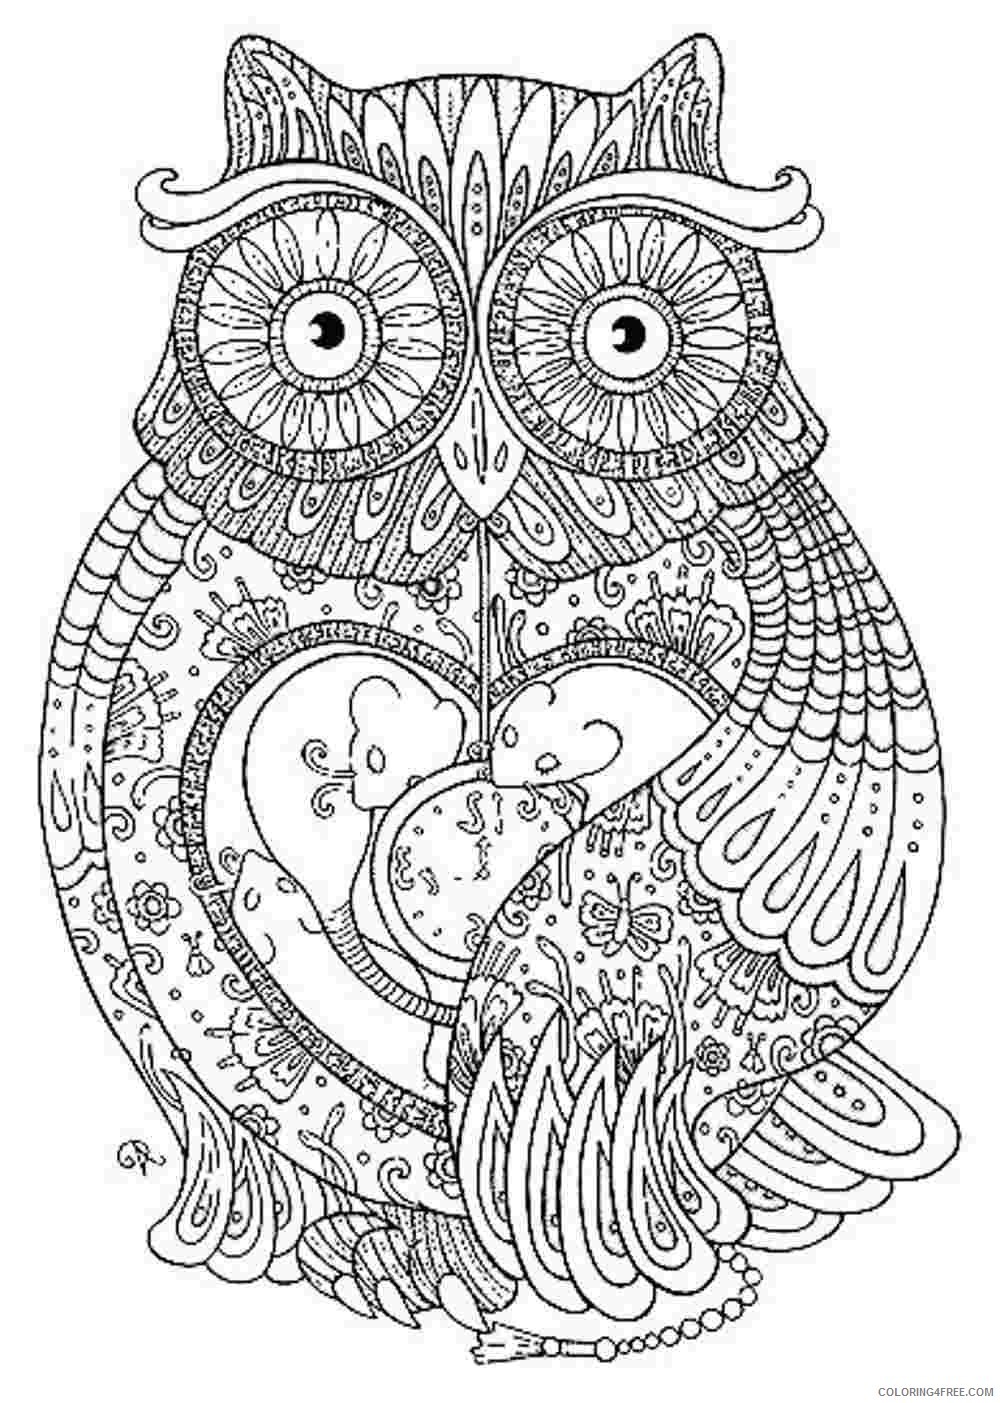 grown up coloring pages abstract owl Coloring4free